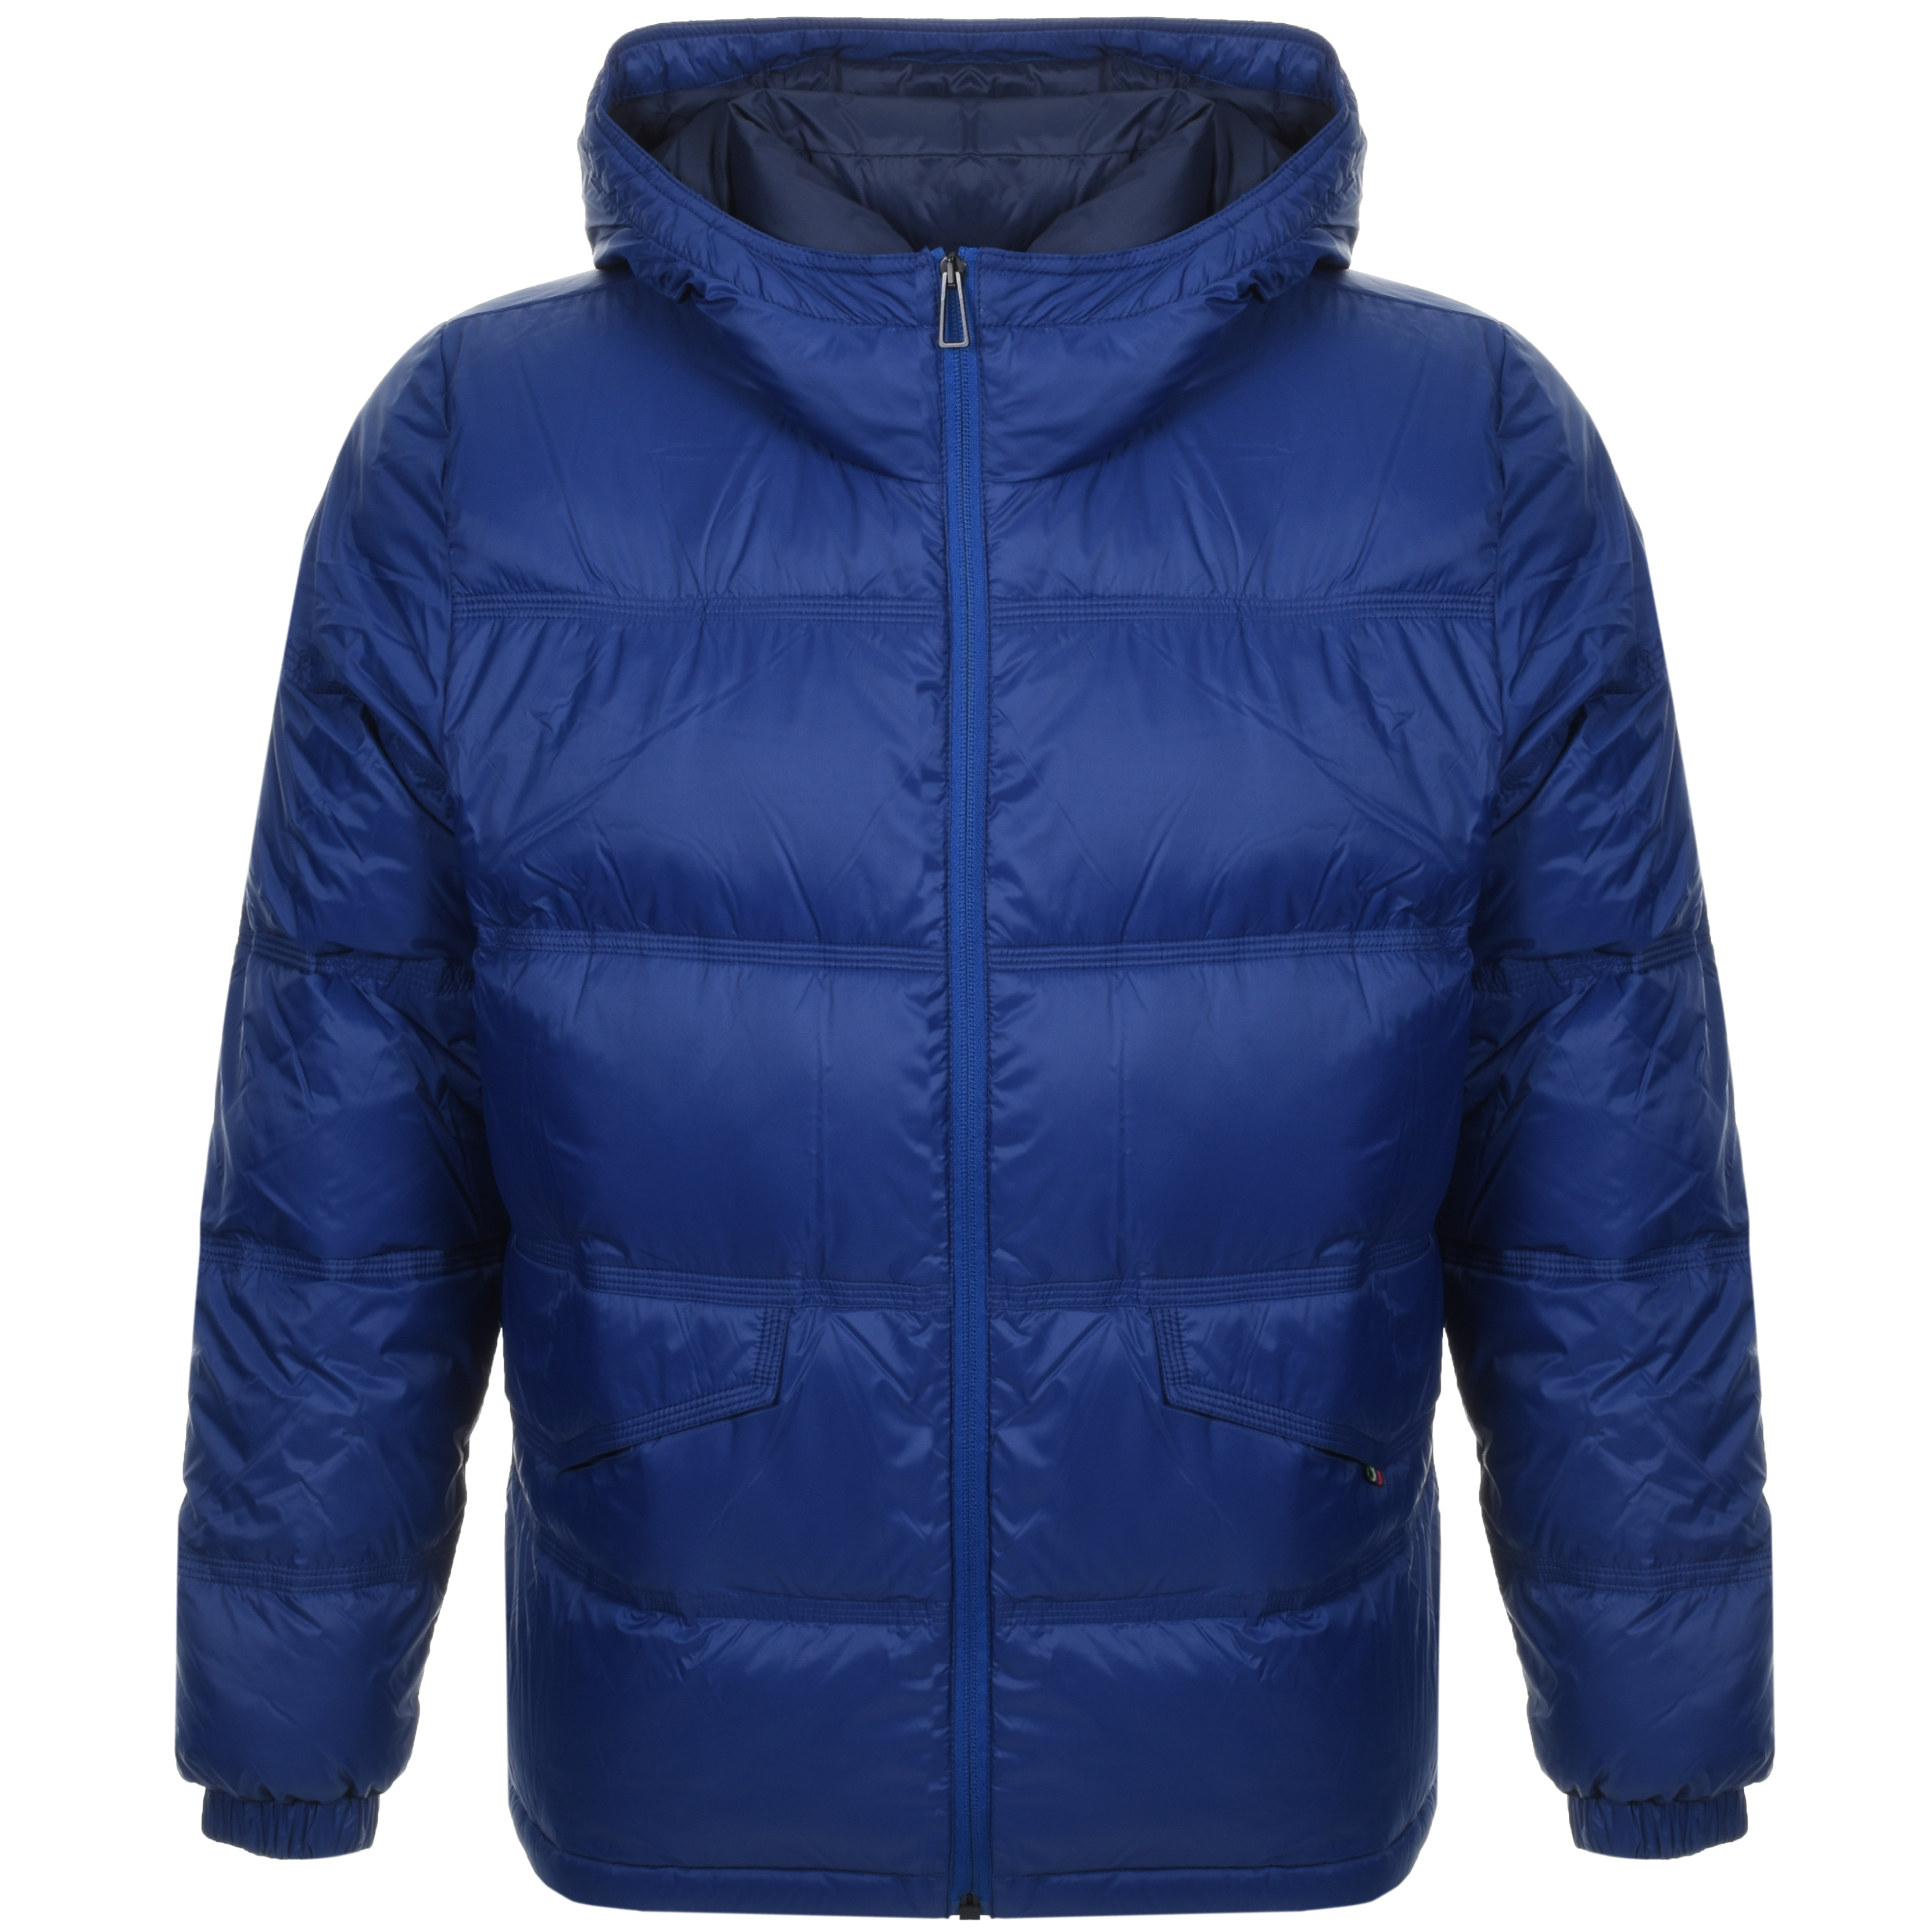 Main Product Image for PS By Paul Smith Hooded Down Jacket Blue